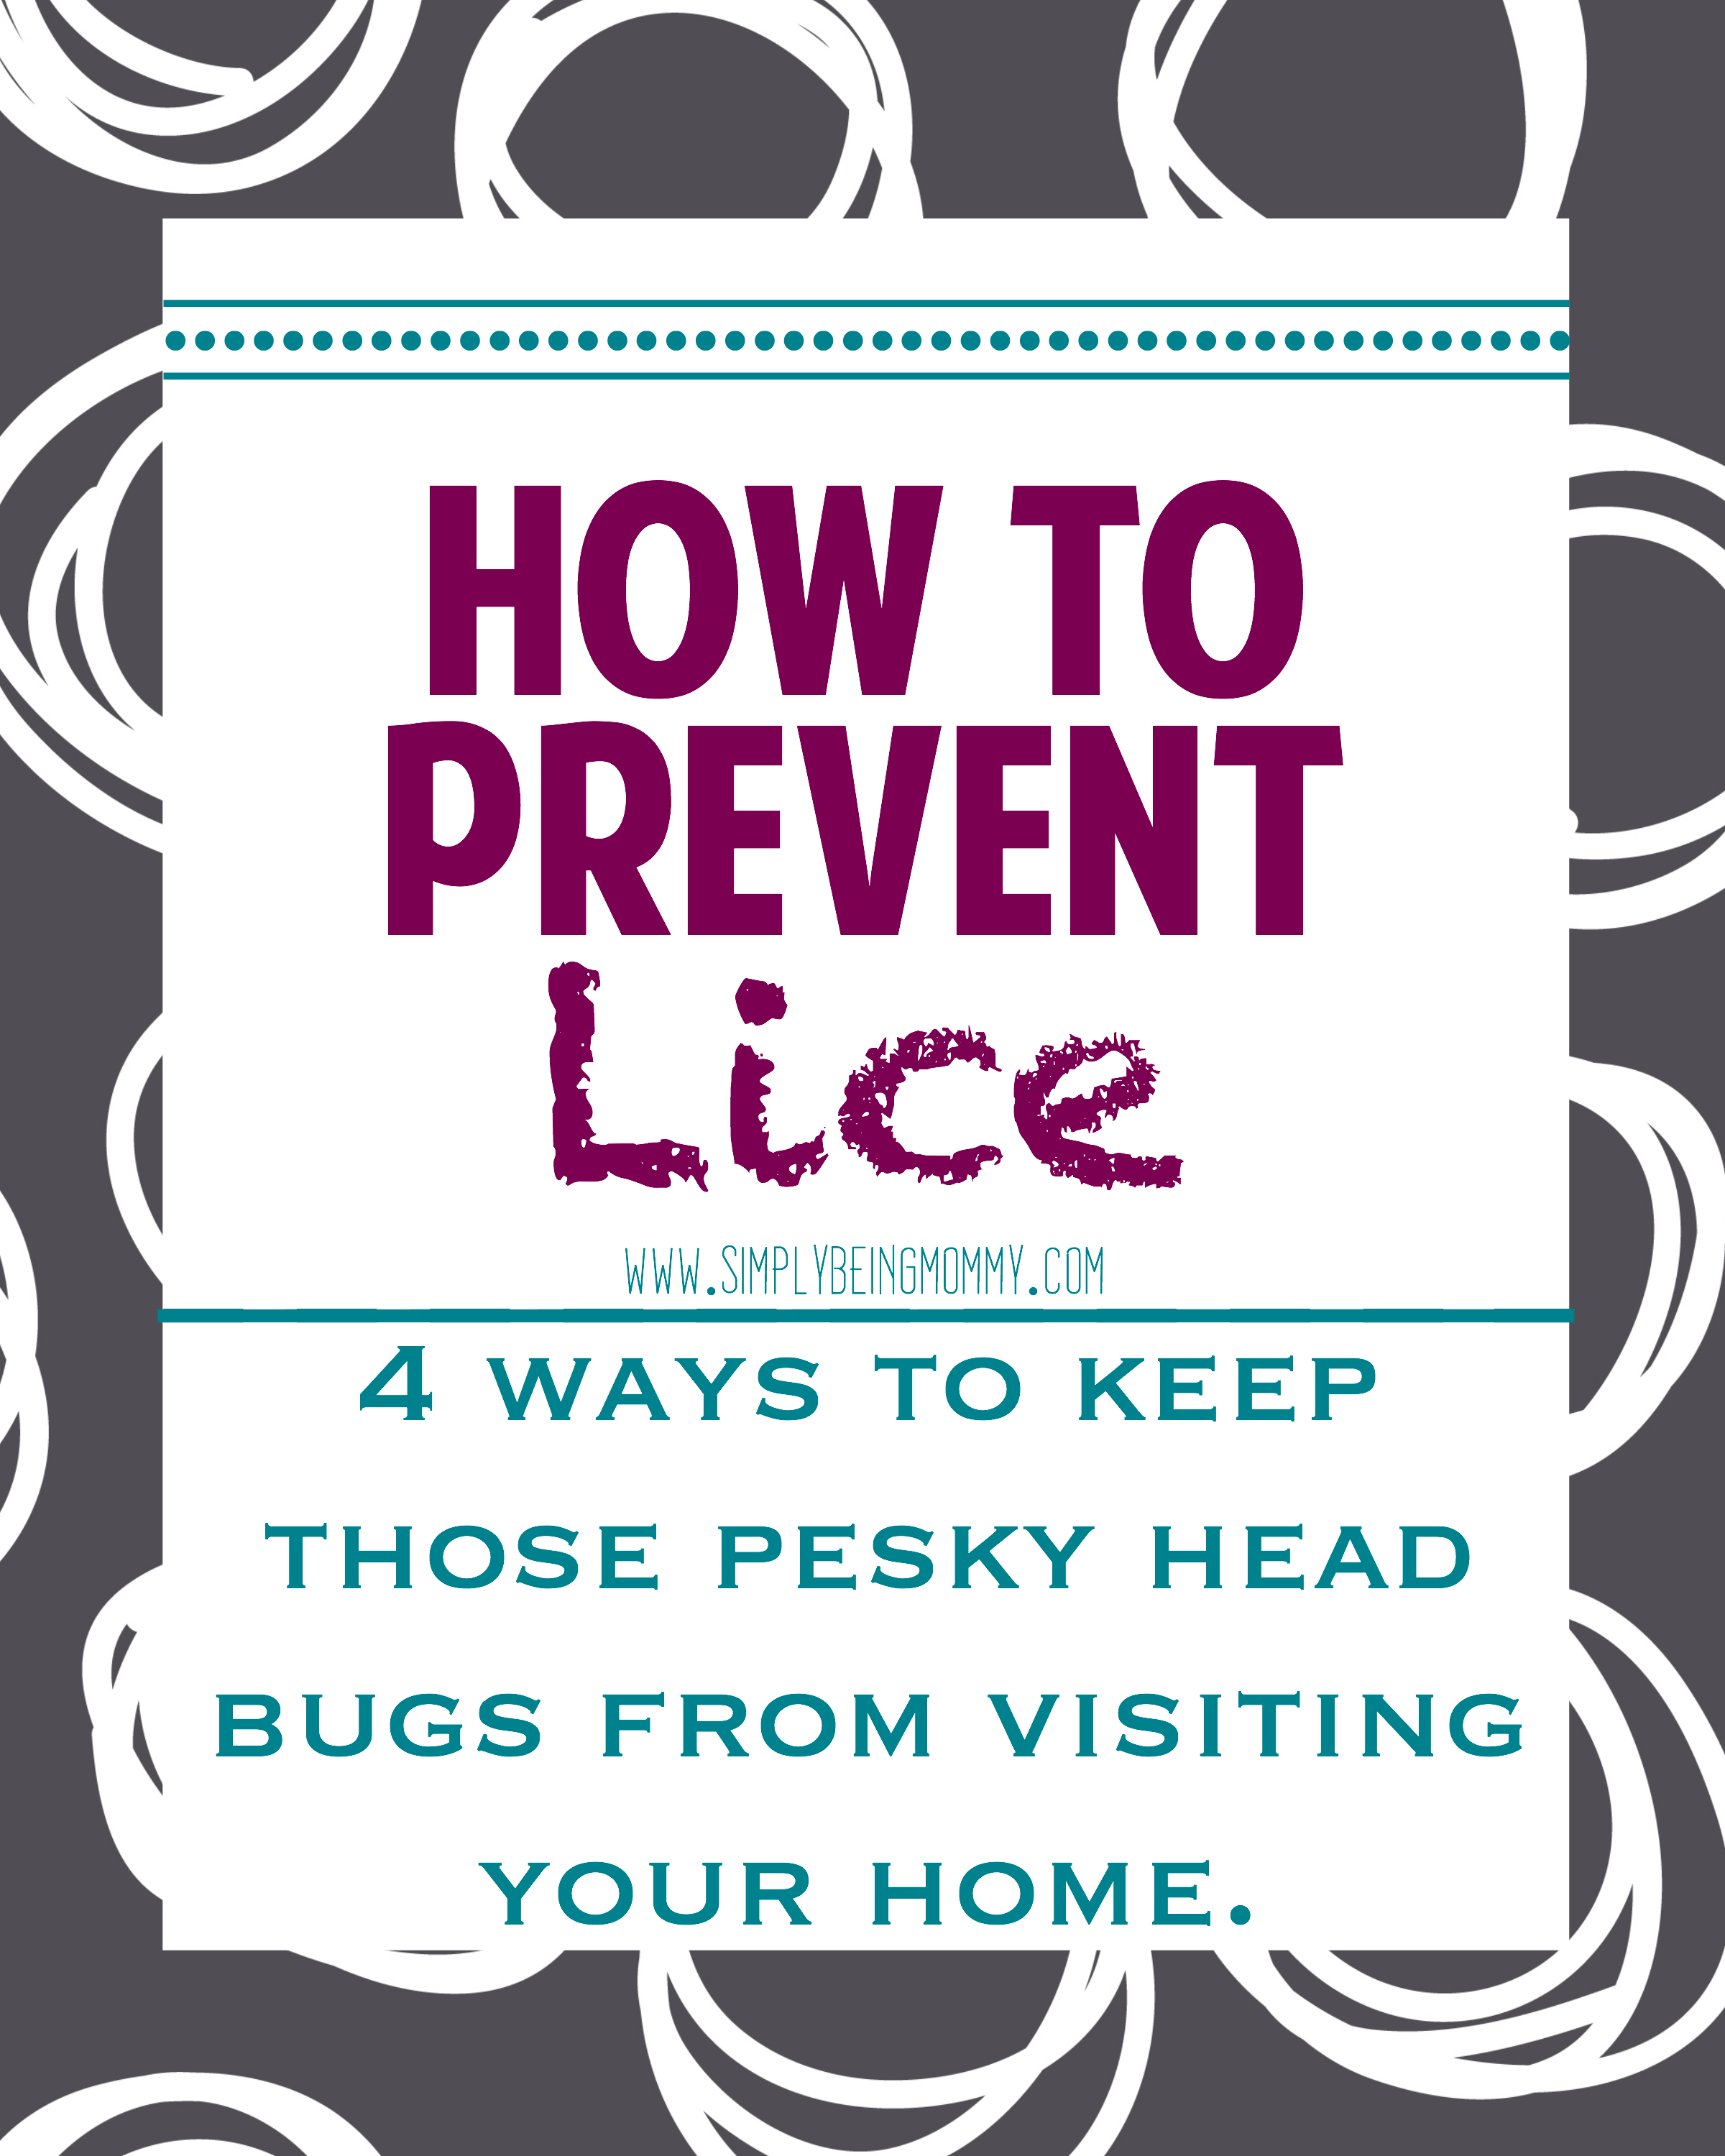 The back-to-school season is stressful enough. Here are 4 easy tips for how to prevent lice.